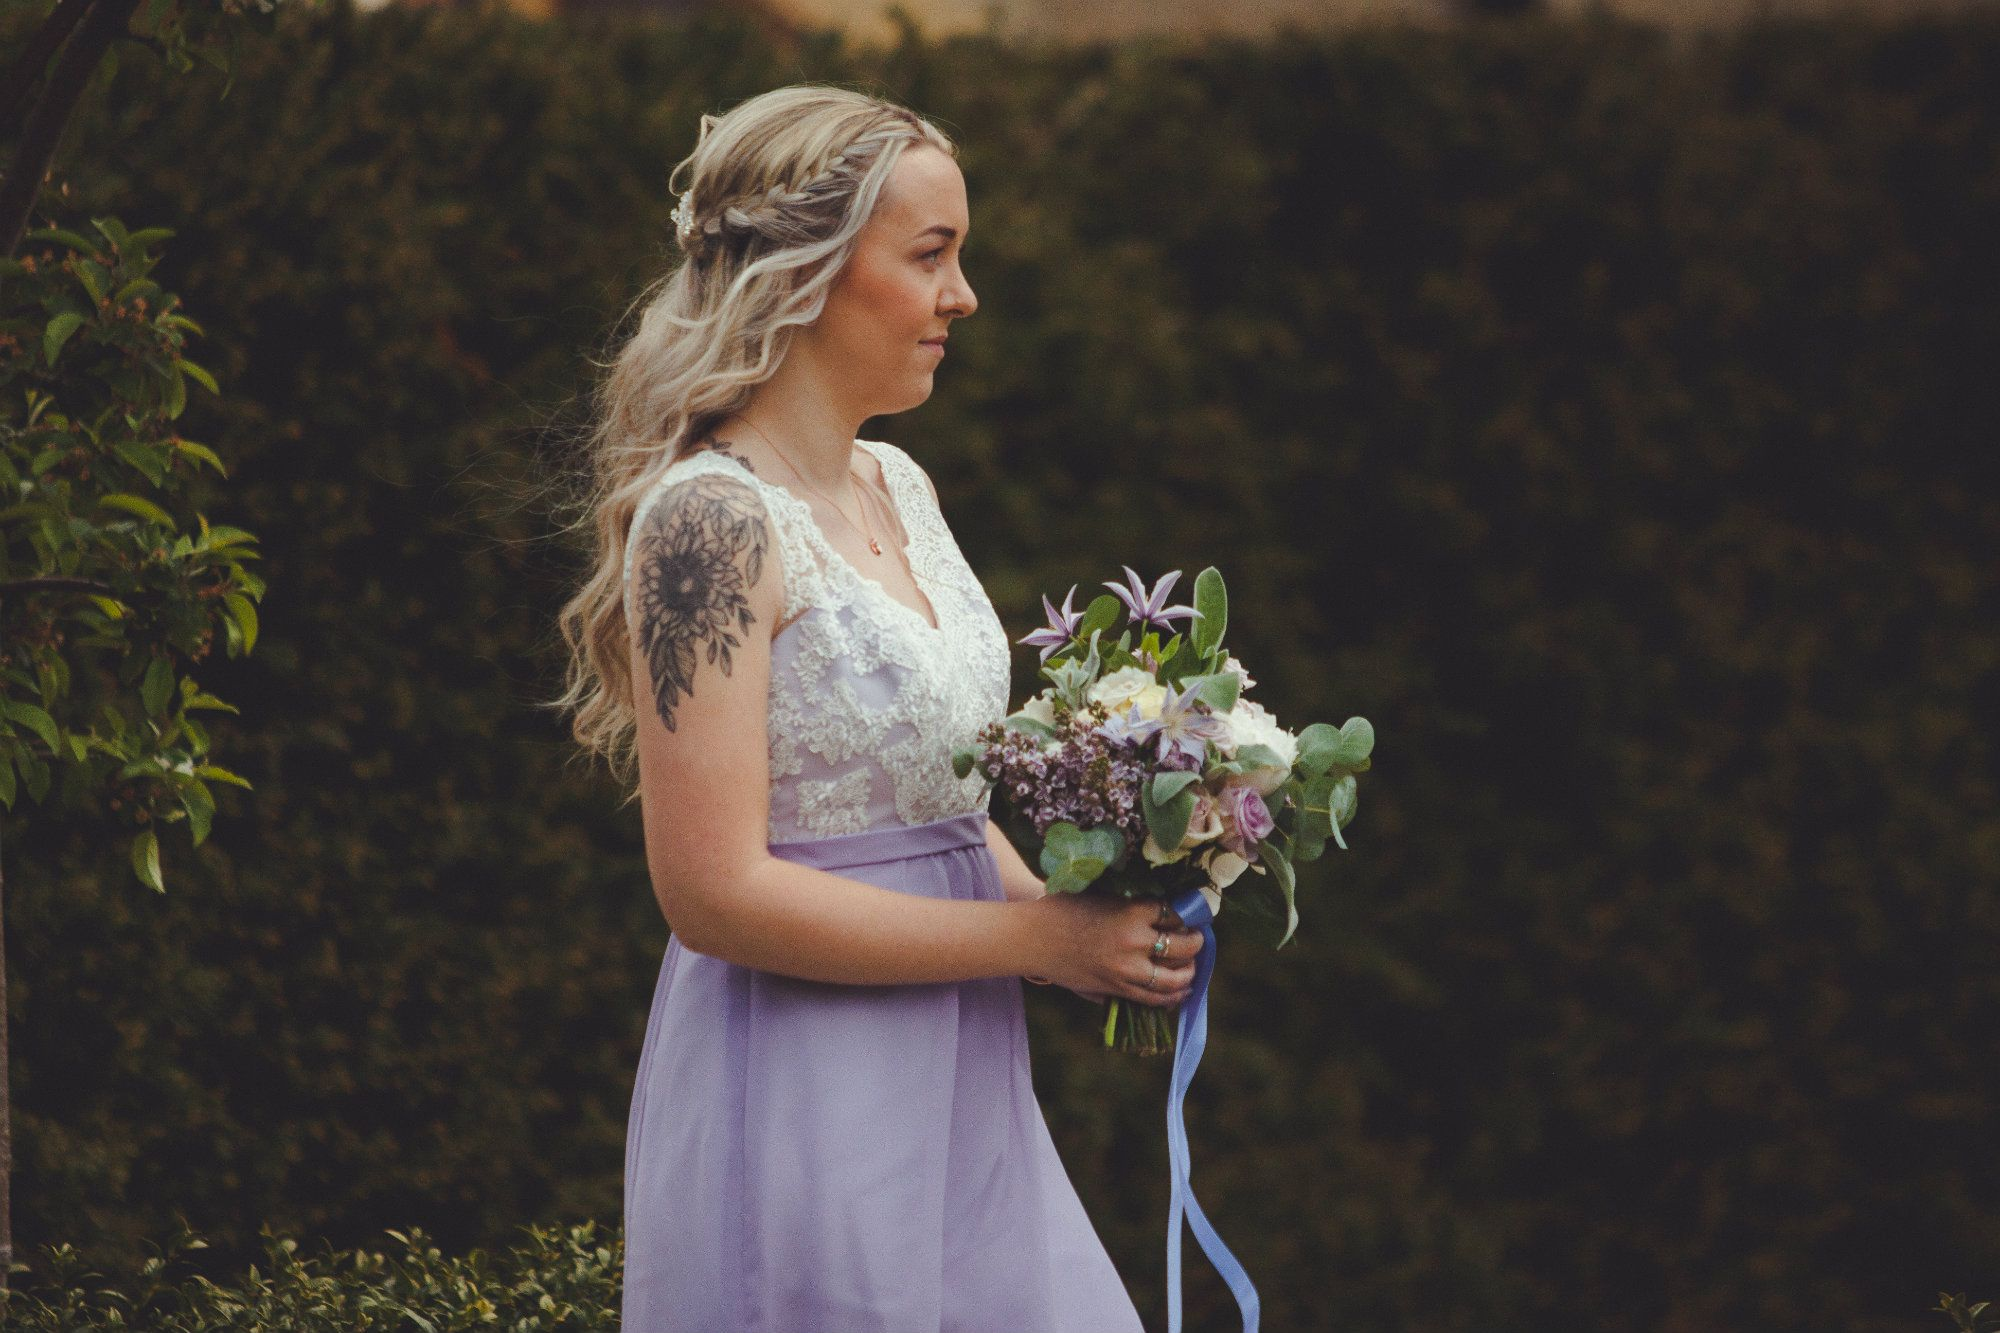 Burford-Oxford-mobile-wedding-hairdresser-Oxfordshire-UK-JEN-112